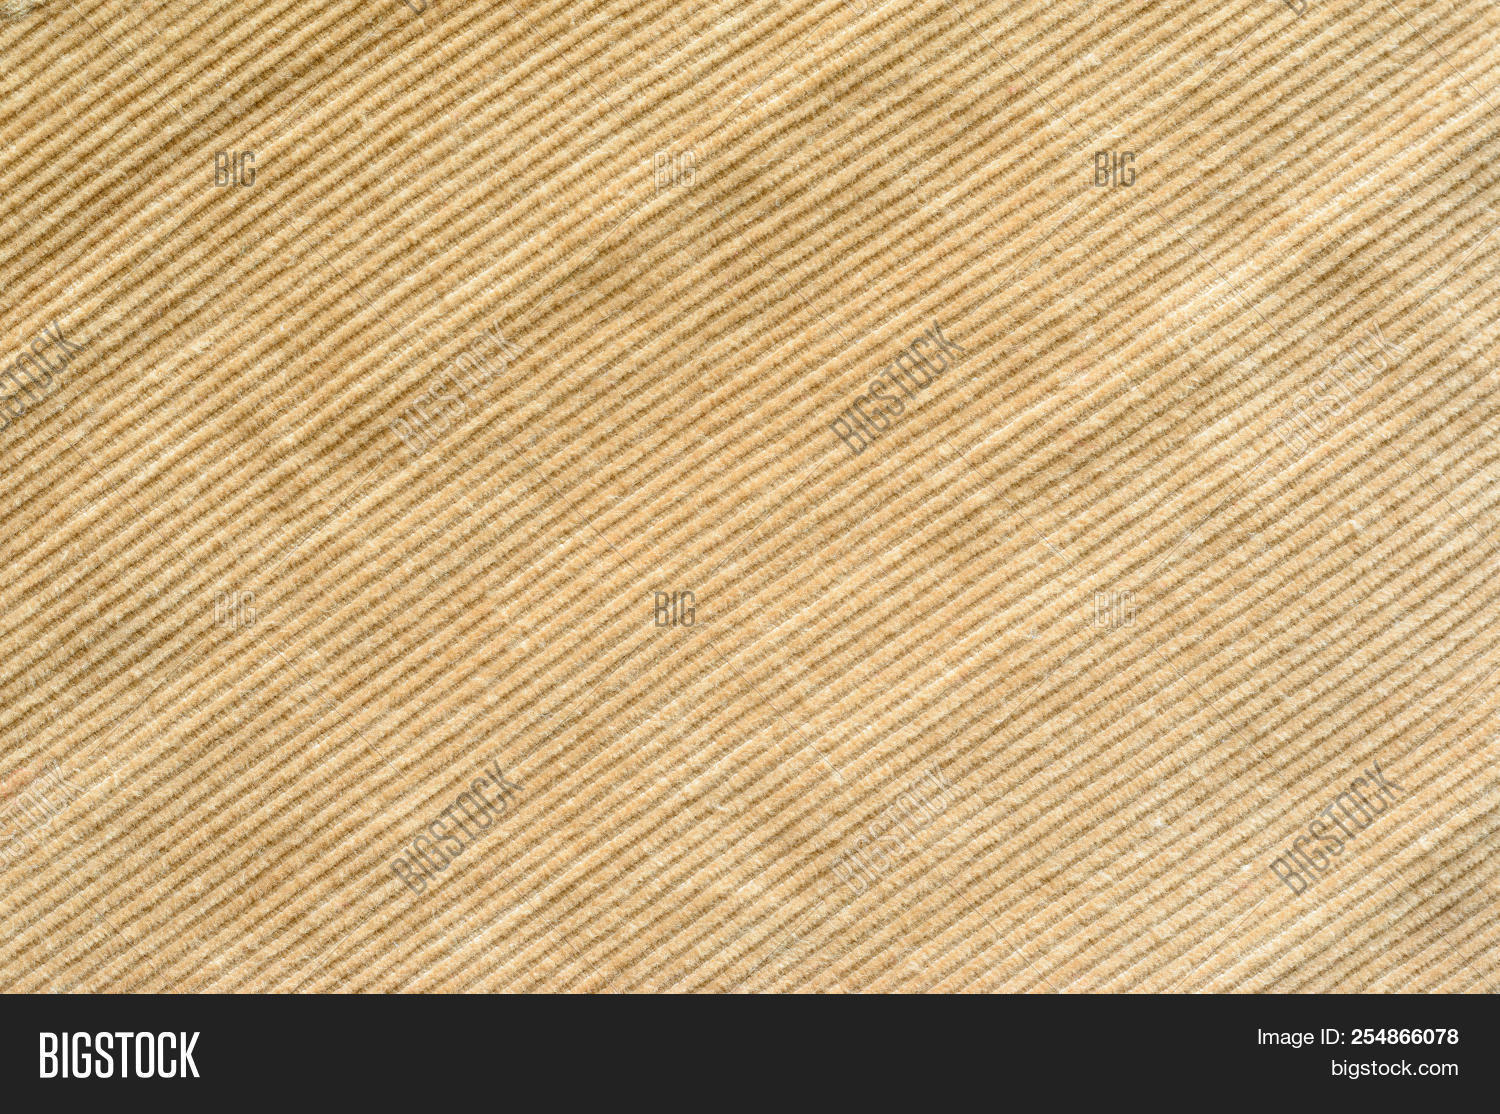 Texture Of Beige Velvet Clothes Textile Fabric Of Corduroy As Background Image Stock Photo 254866078